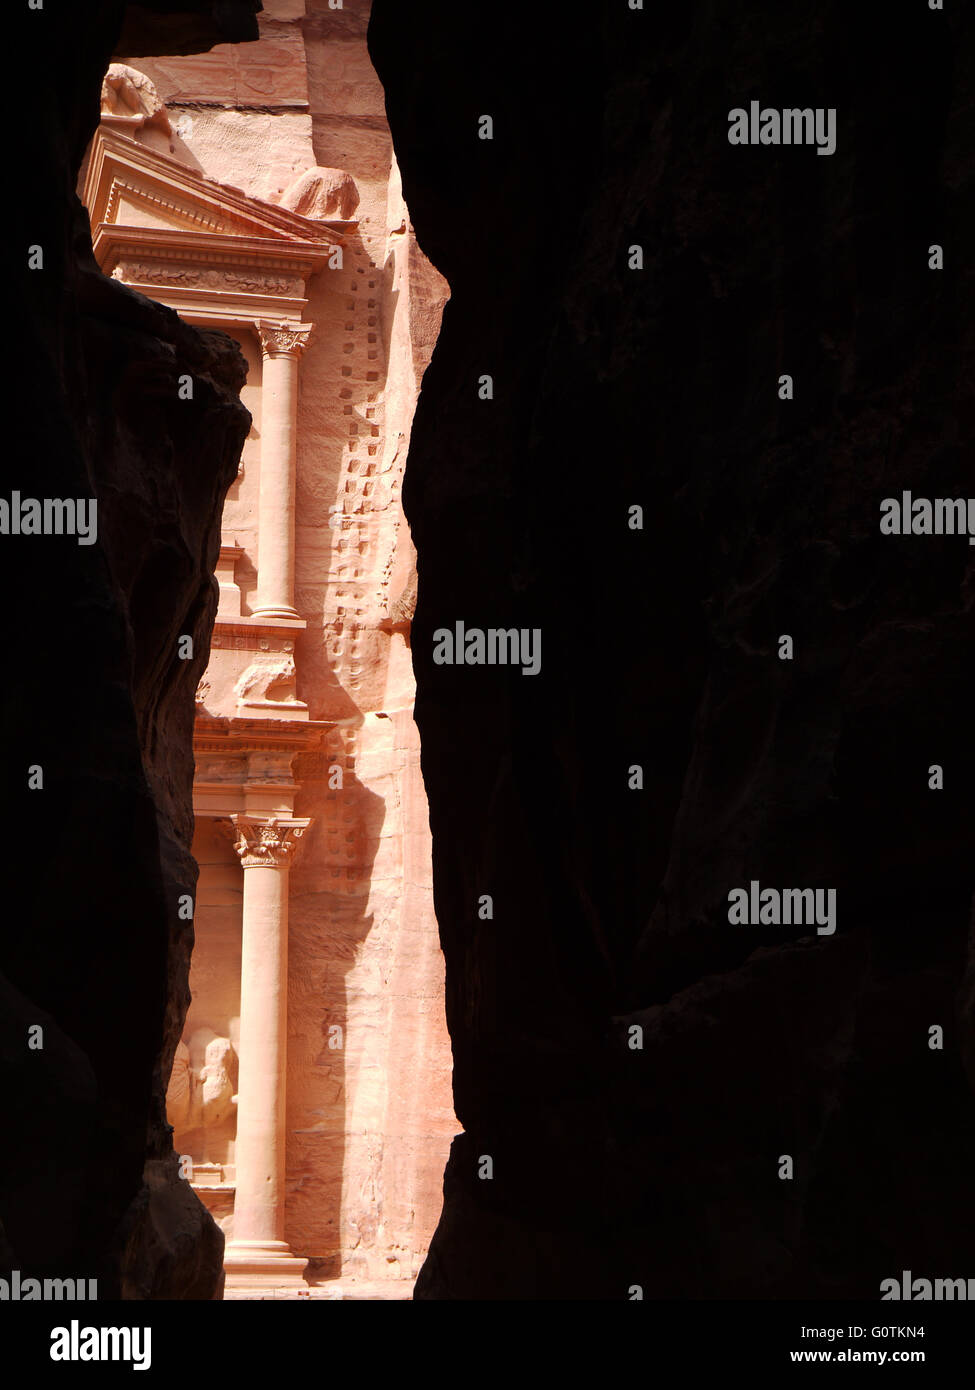 The Treasury (Al Kazneh), Petra, Jordan - Stock Image